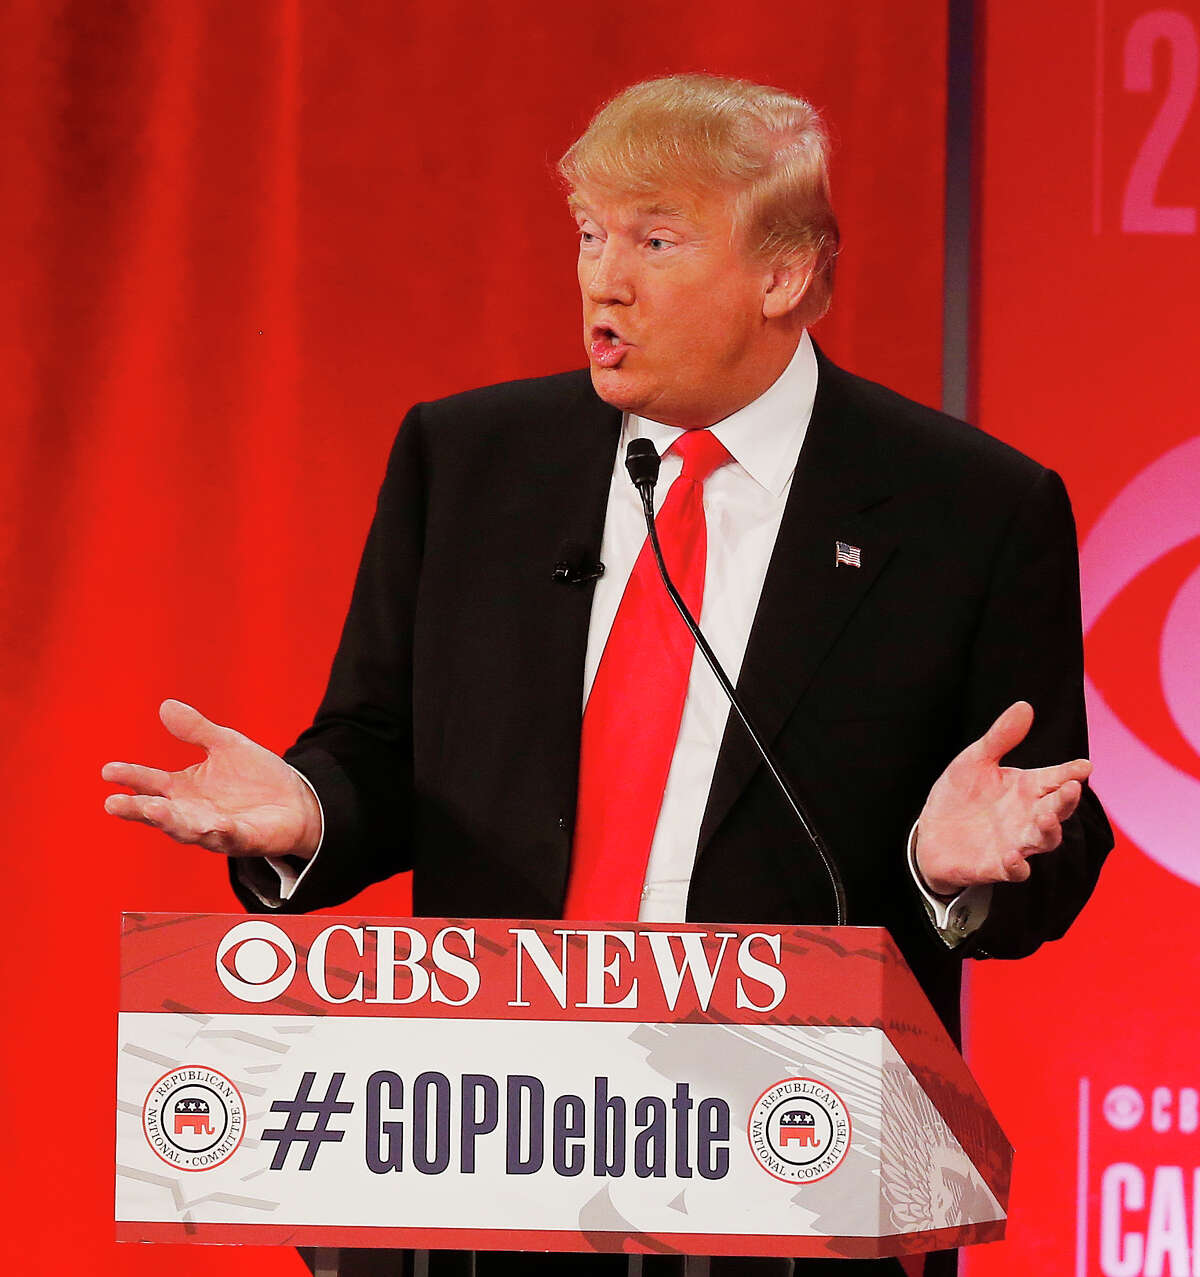 Republican presidential candidate, businessman Donald Trump speaks during the CBS News Republican presidential debate at the Peace Center, Saturday, Feb. 13, 2016, in Greenville, S.C. (AP Photo/John Bazemore) ORG XMIT: RNC126